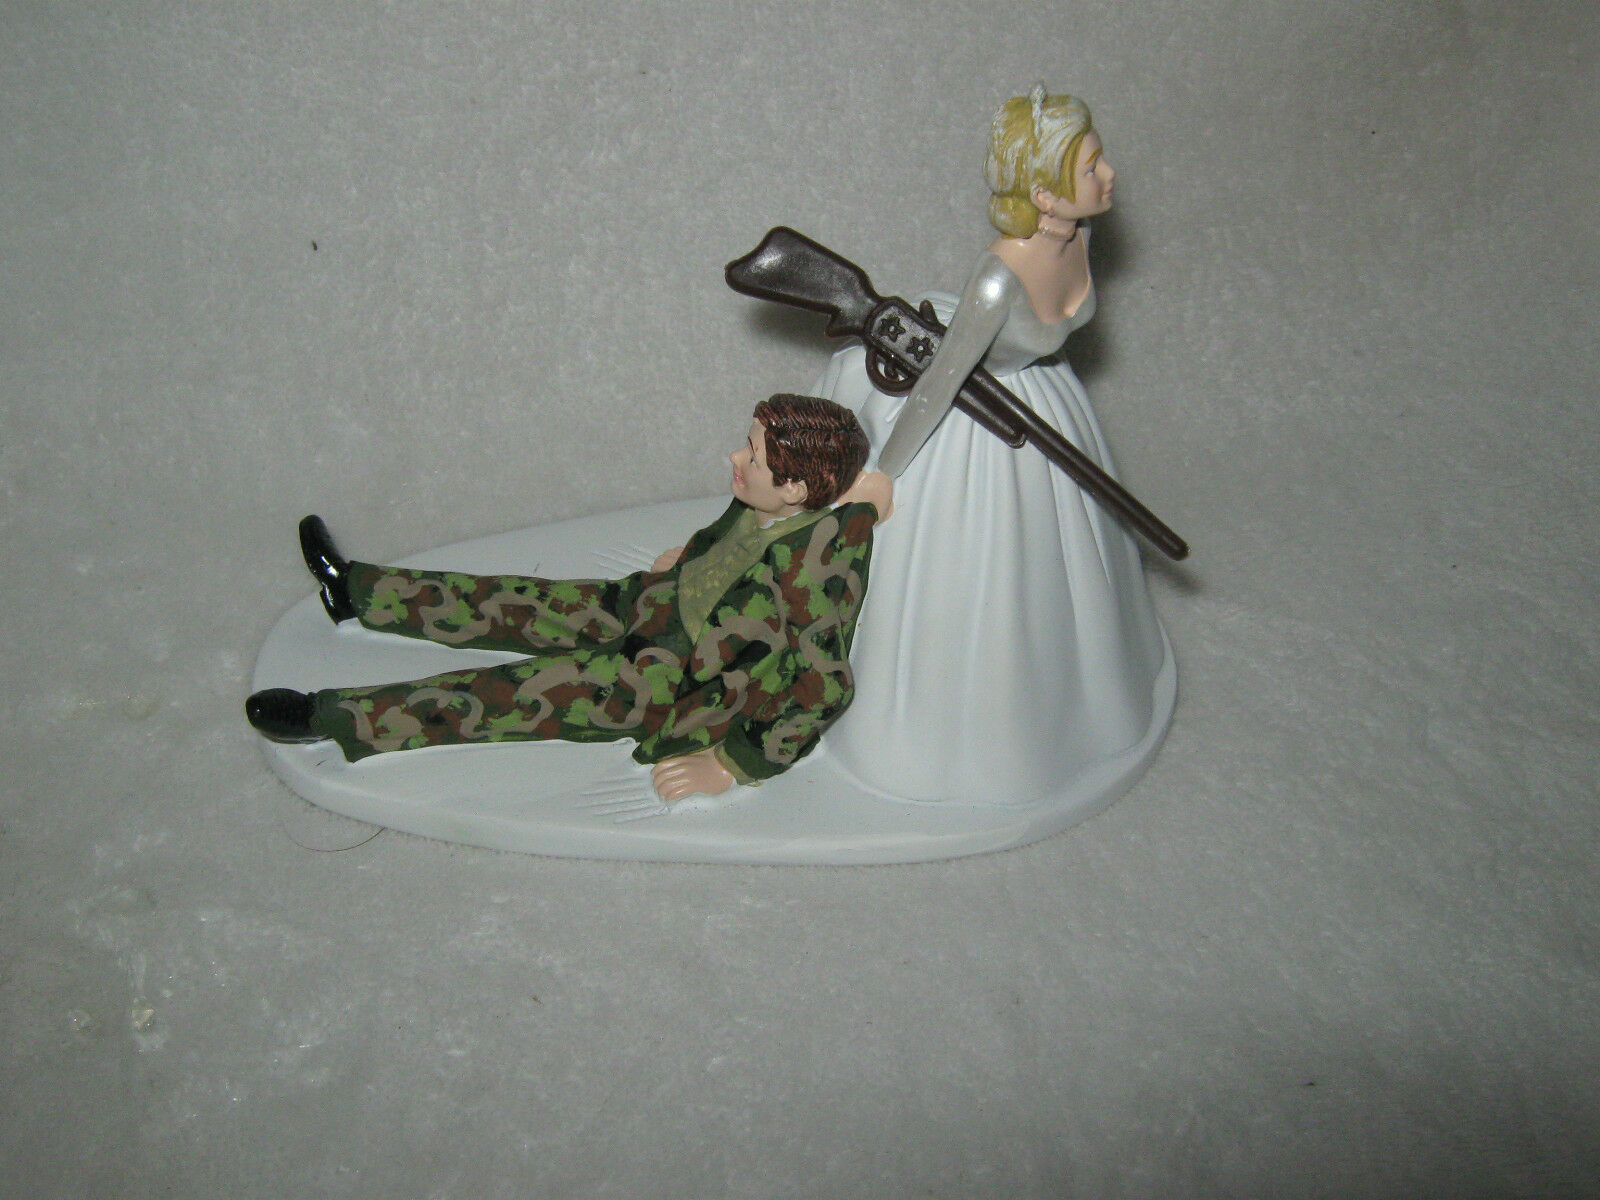 Redneck Wedding Cake Toppers submited images